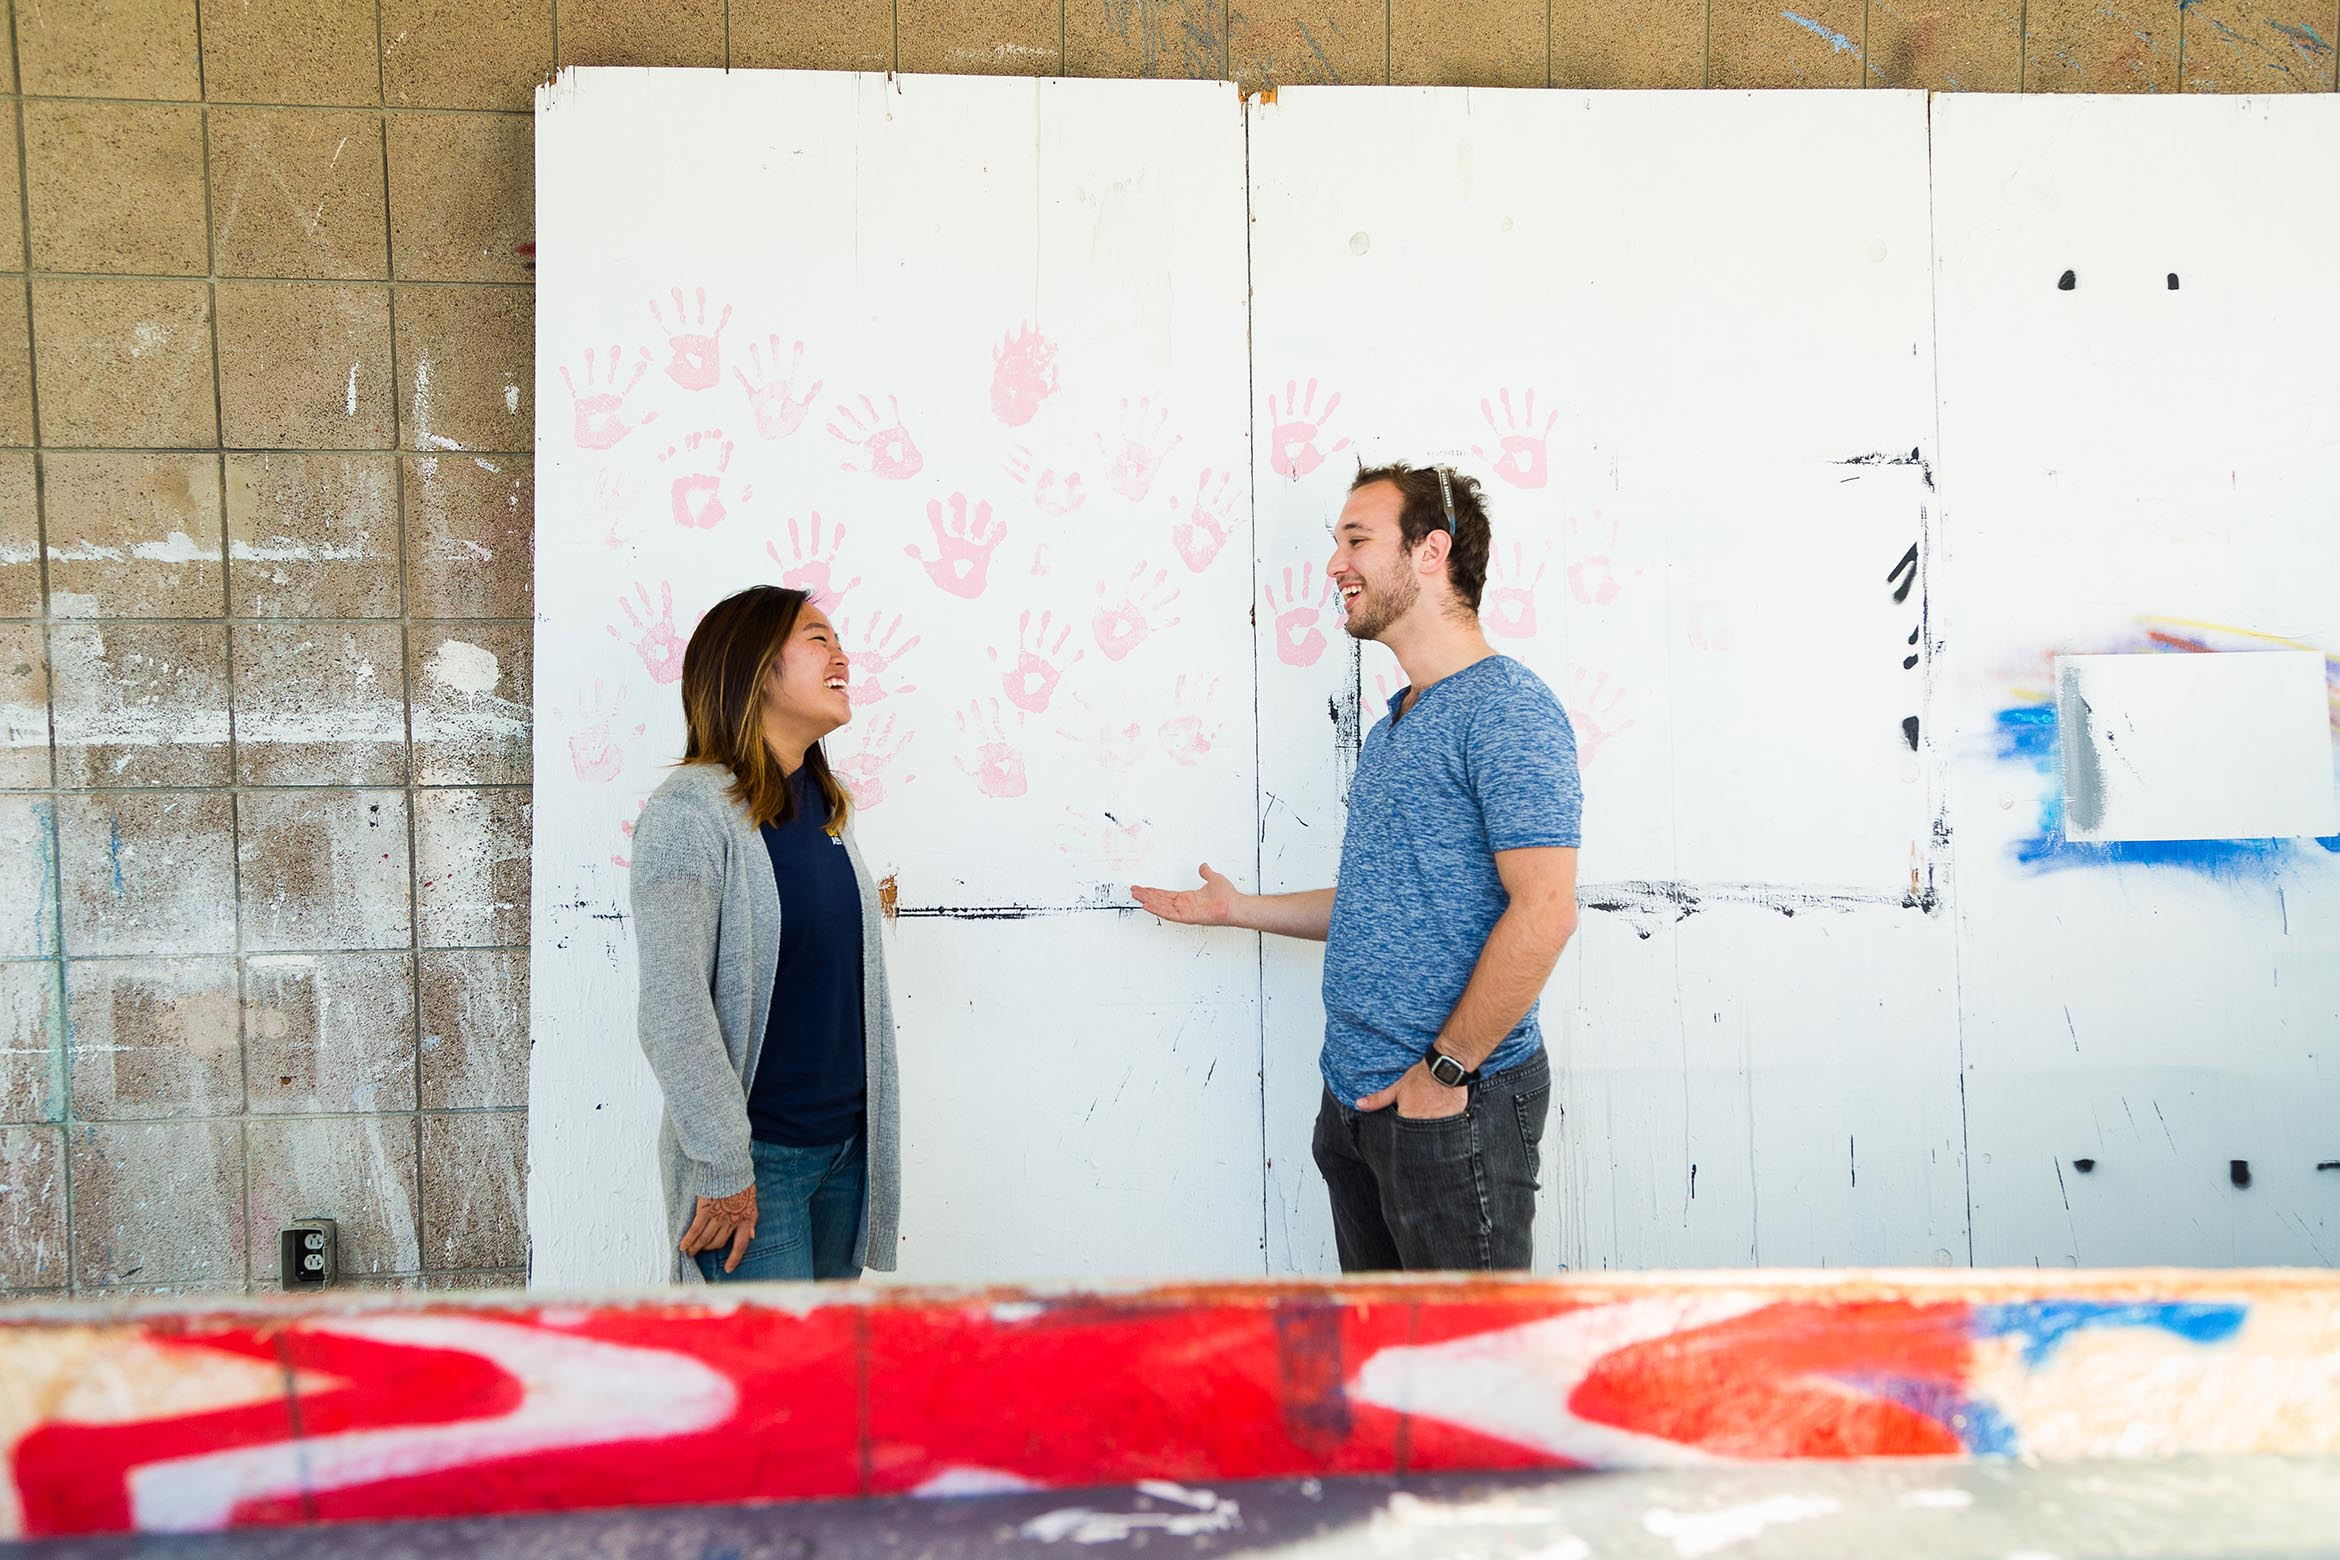 This is an image of two students chatting in front of an art mural.